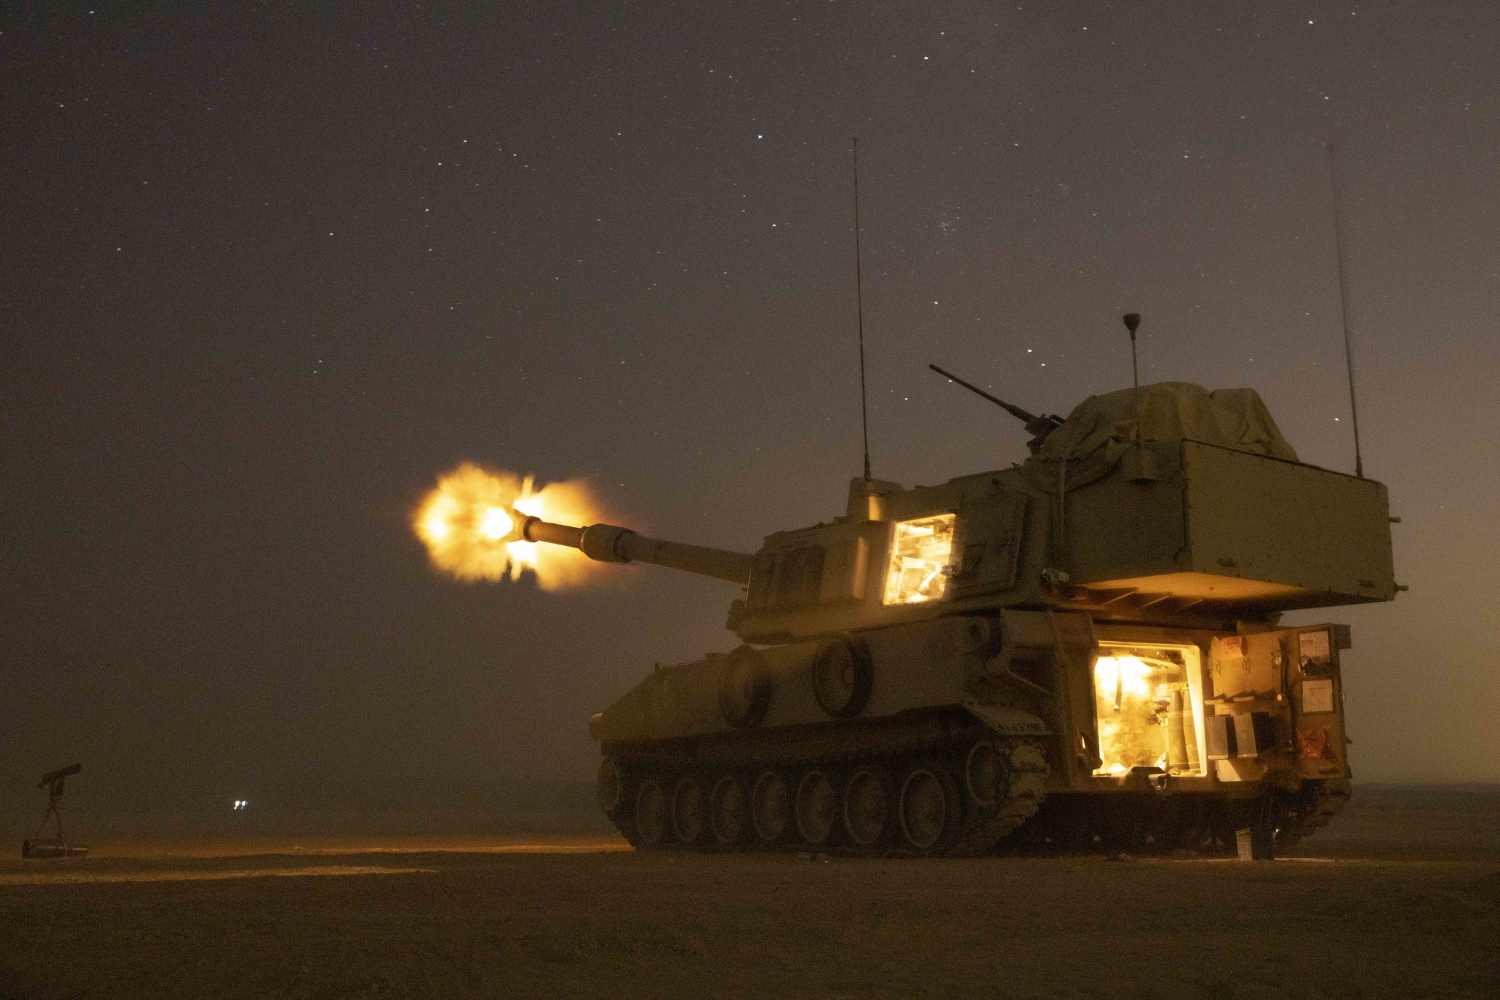 U.S. Army soldiers fire a M109A6 Paladin in support of the joint training exercise Eager Lion '19 at Training Area 1, Jordan, Aug. 27, 2019. (Spc. Angel Ruszkiewicz/Army)